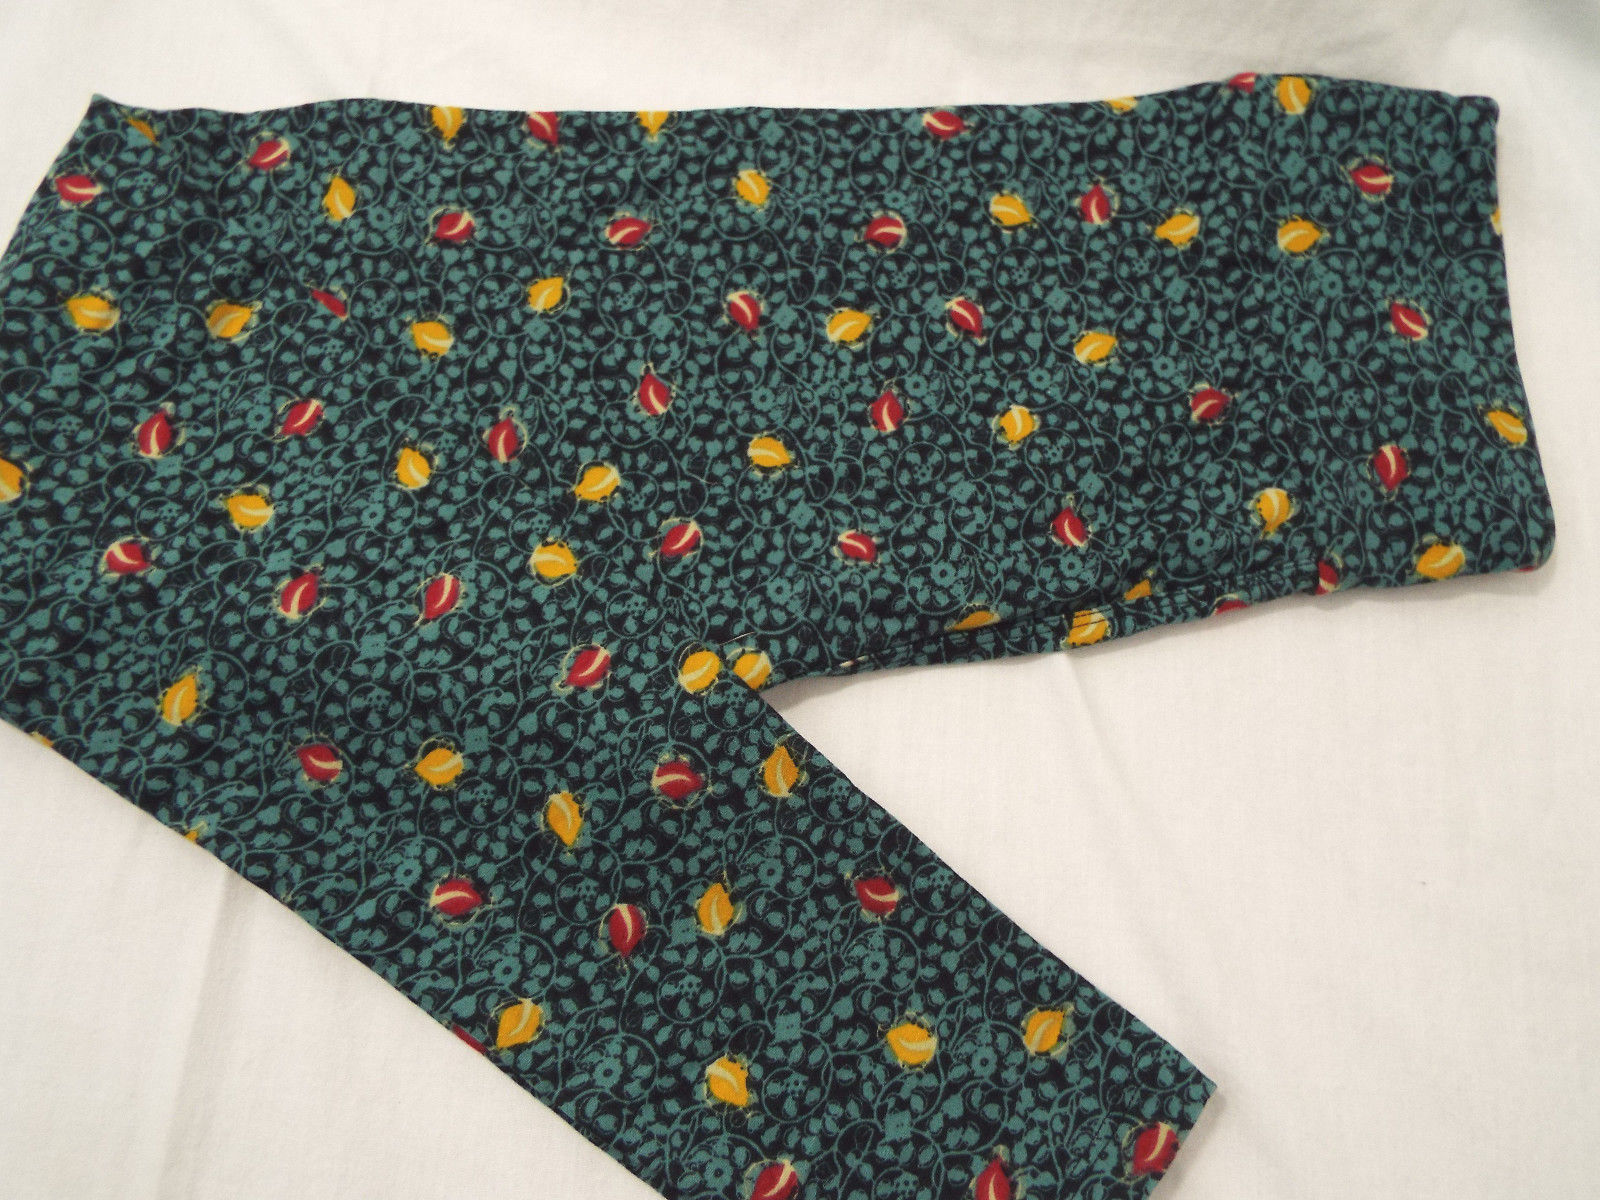 Women's LuLaRoe OS One Size Leggings Black Teal Red Yellow Tiny Floral NEW